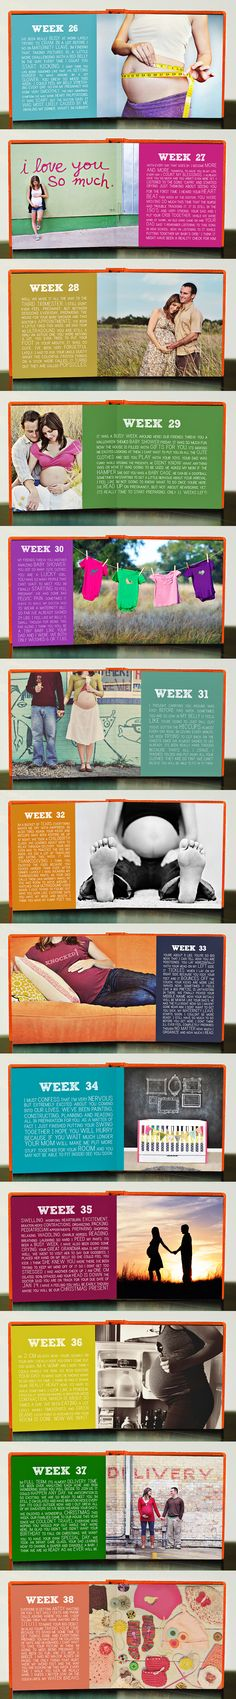 and maternity book pt. 2. i had to find out what happened!